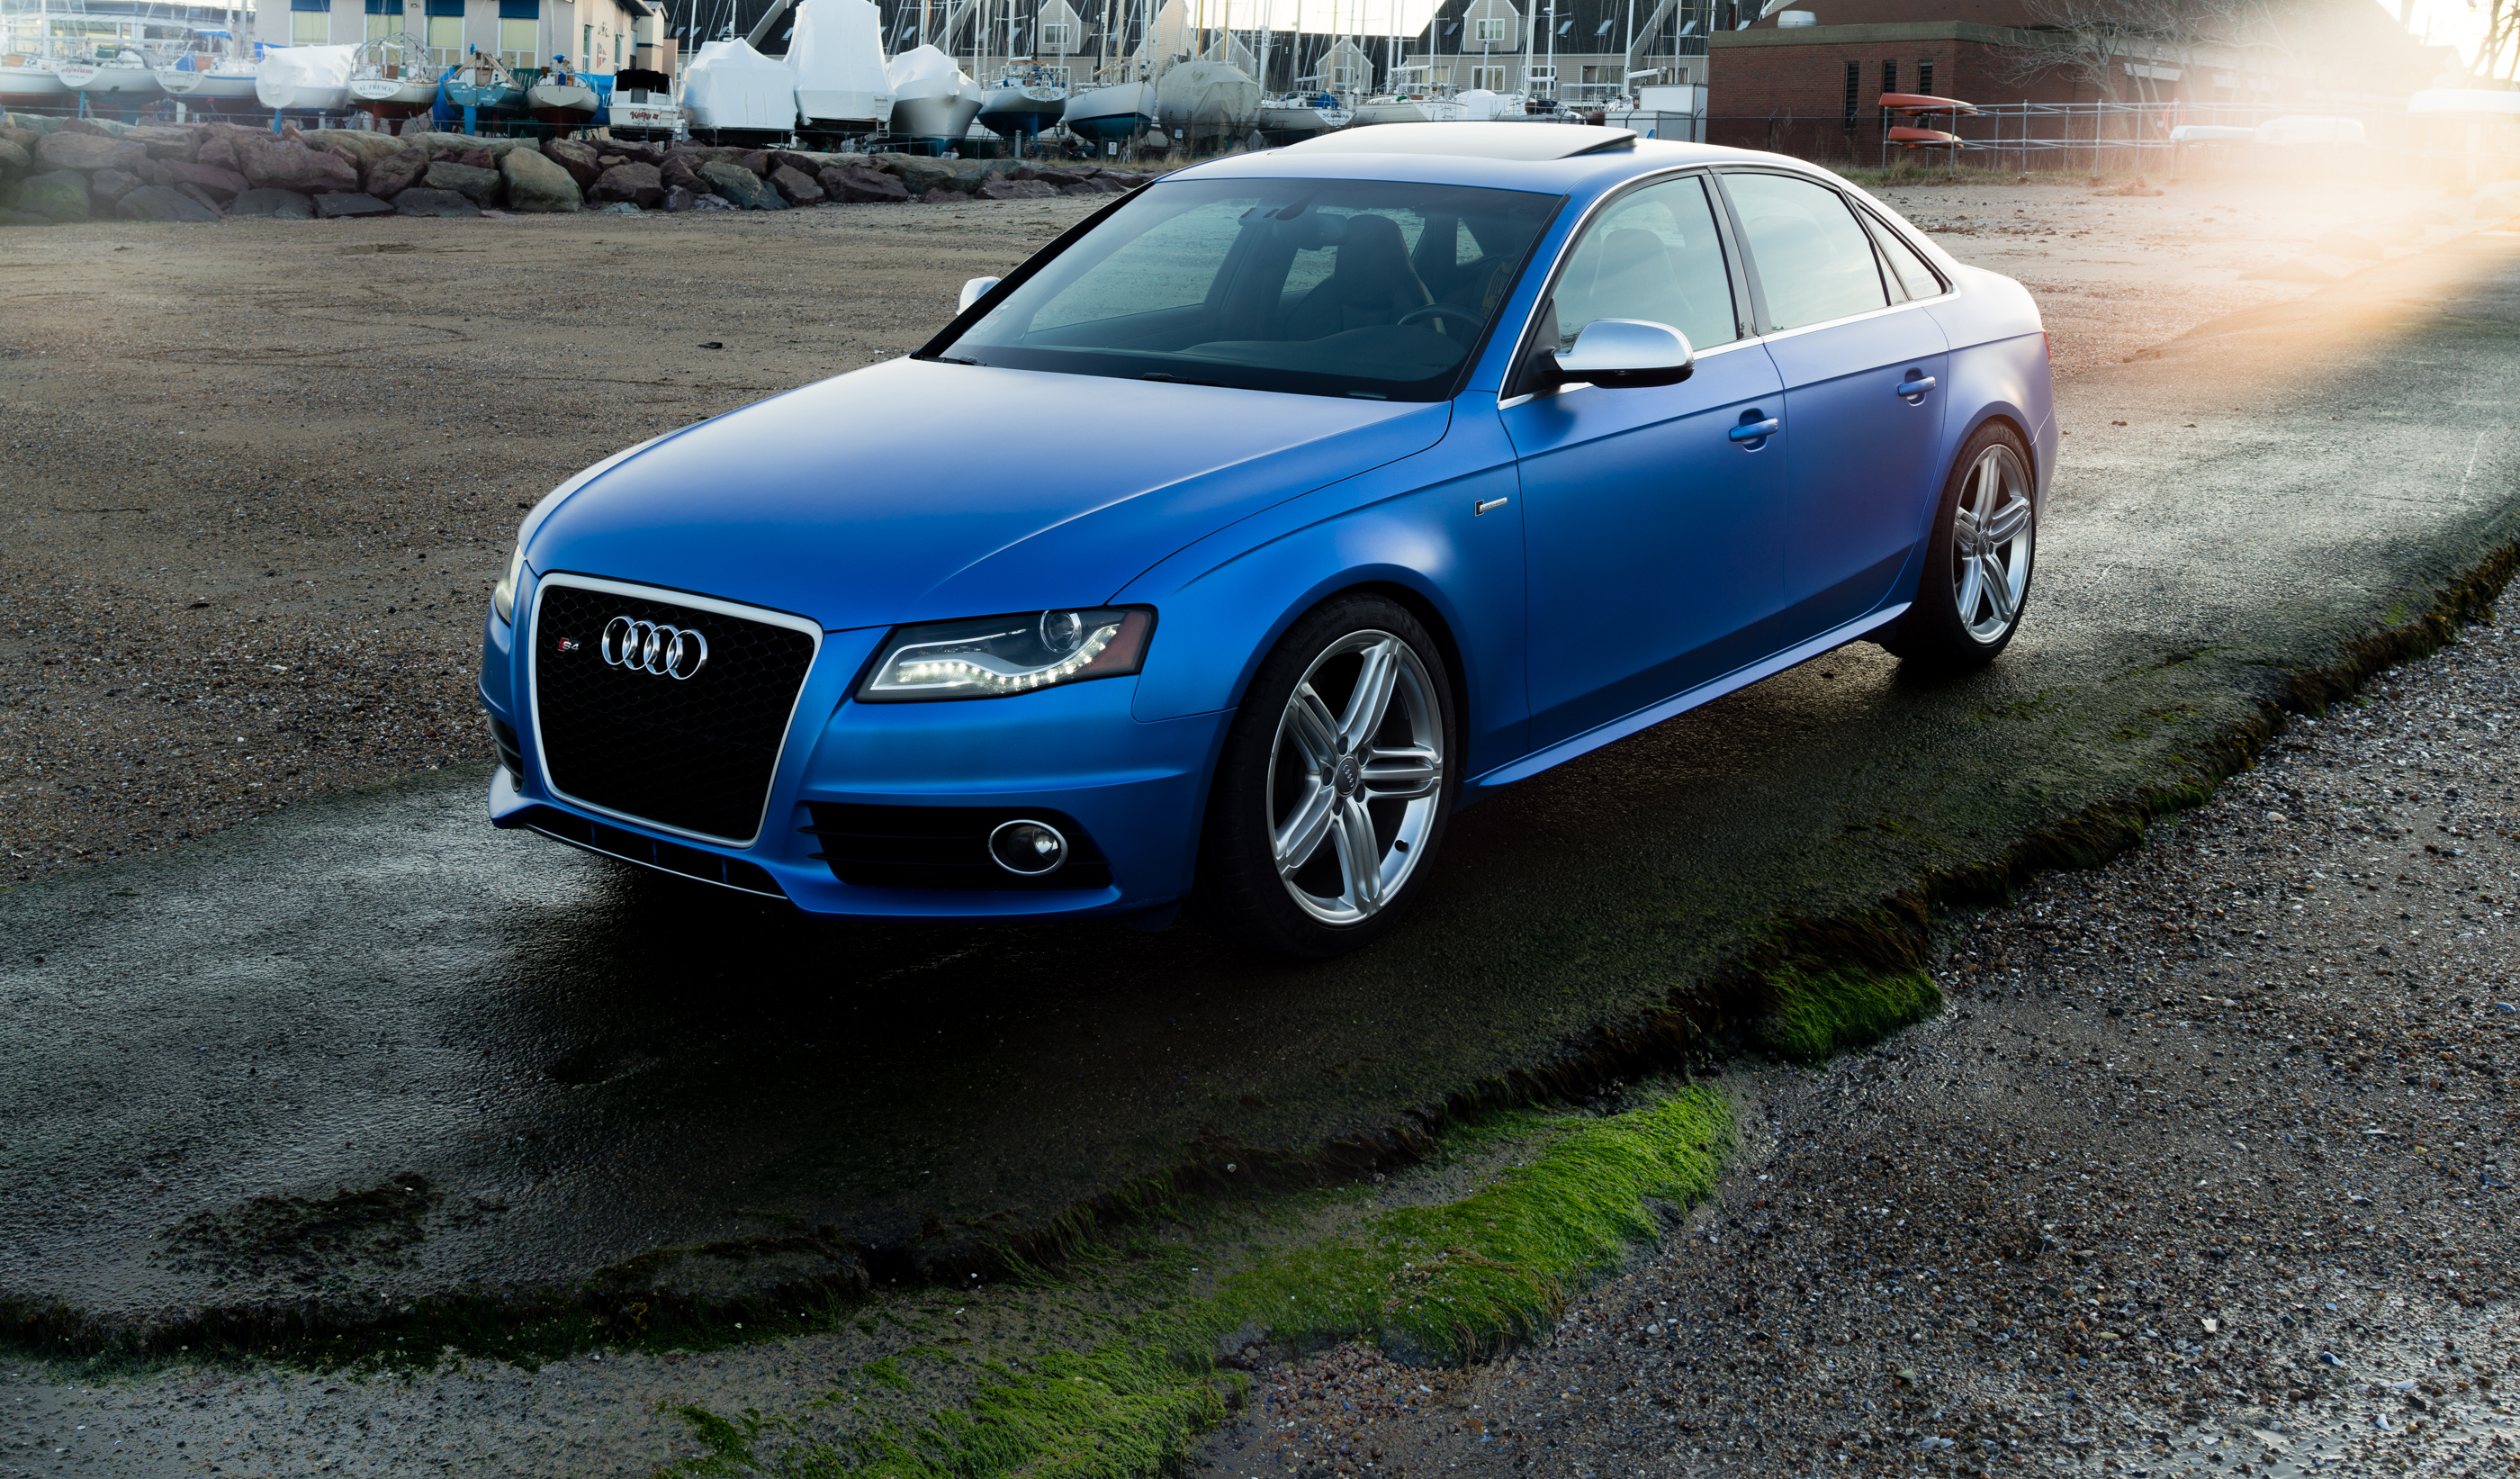 2011 Audi S4- Custom Pearl Blue